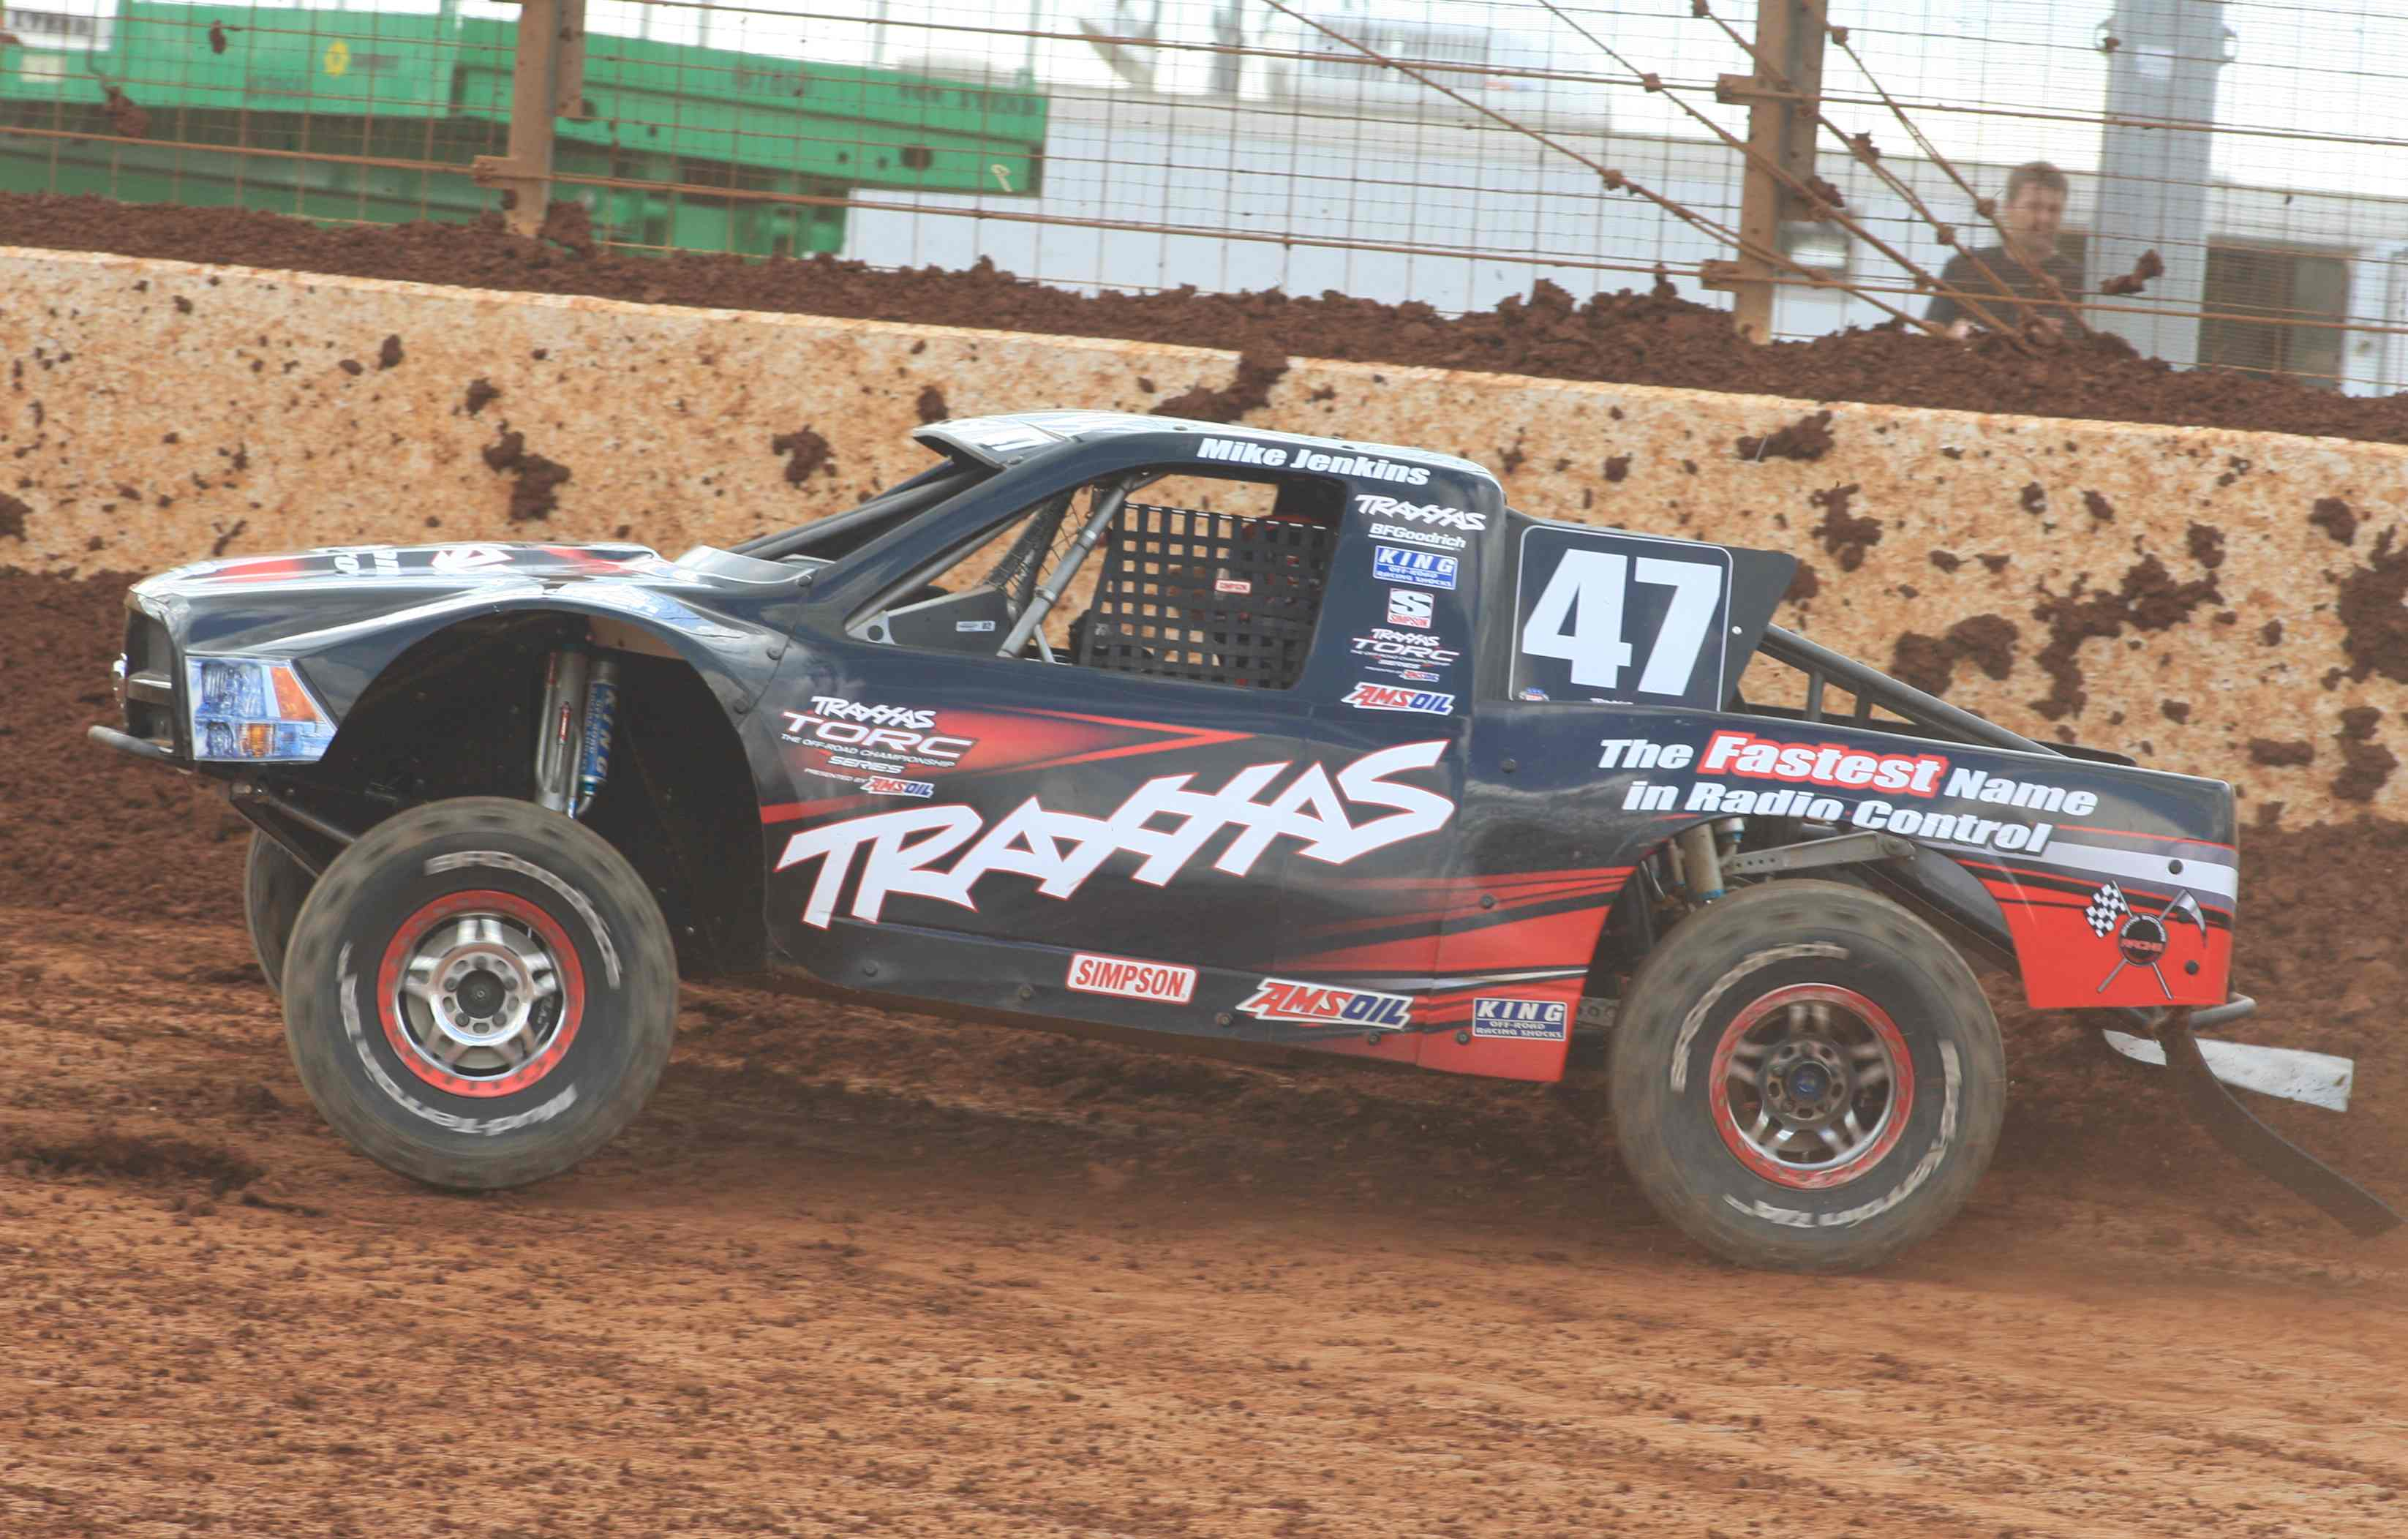 Traxxas owner and flagship PRO 4X4 driver Mike Jenkins looks to jump even further up